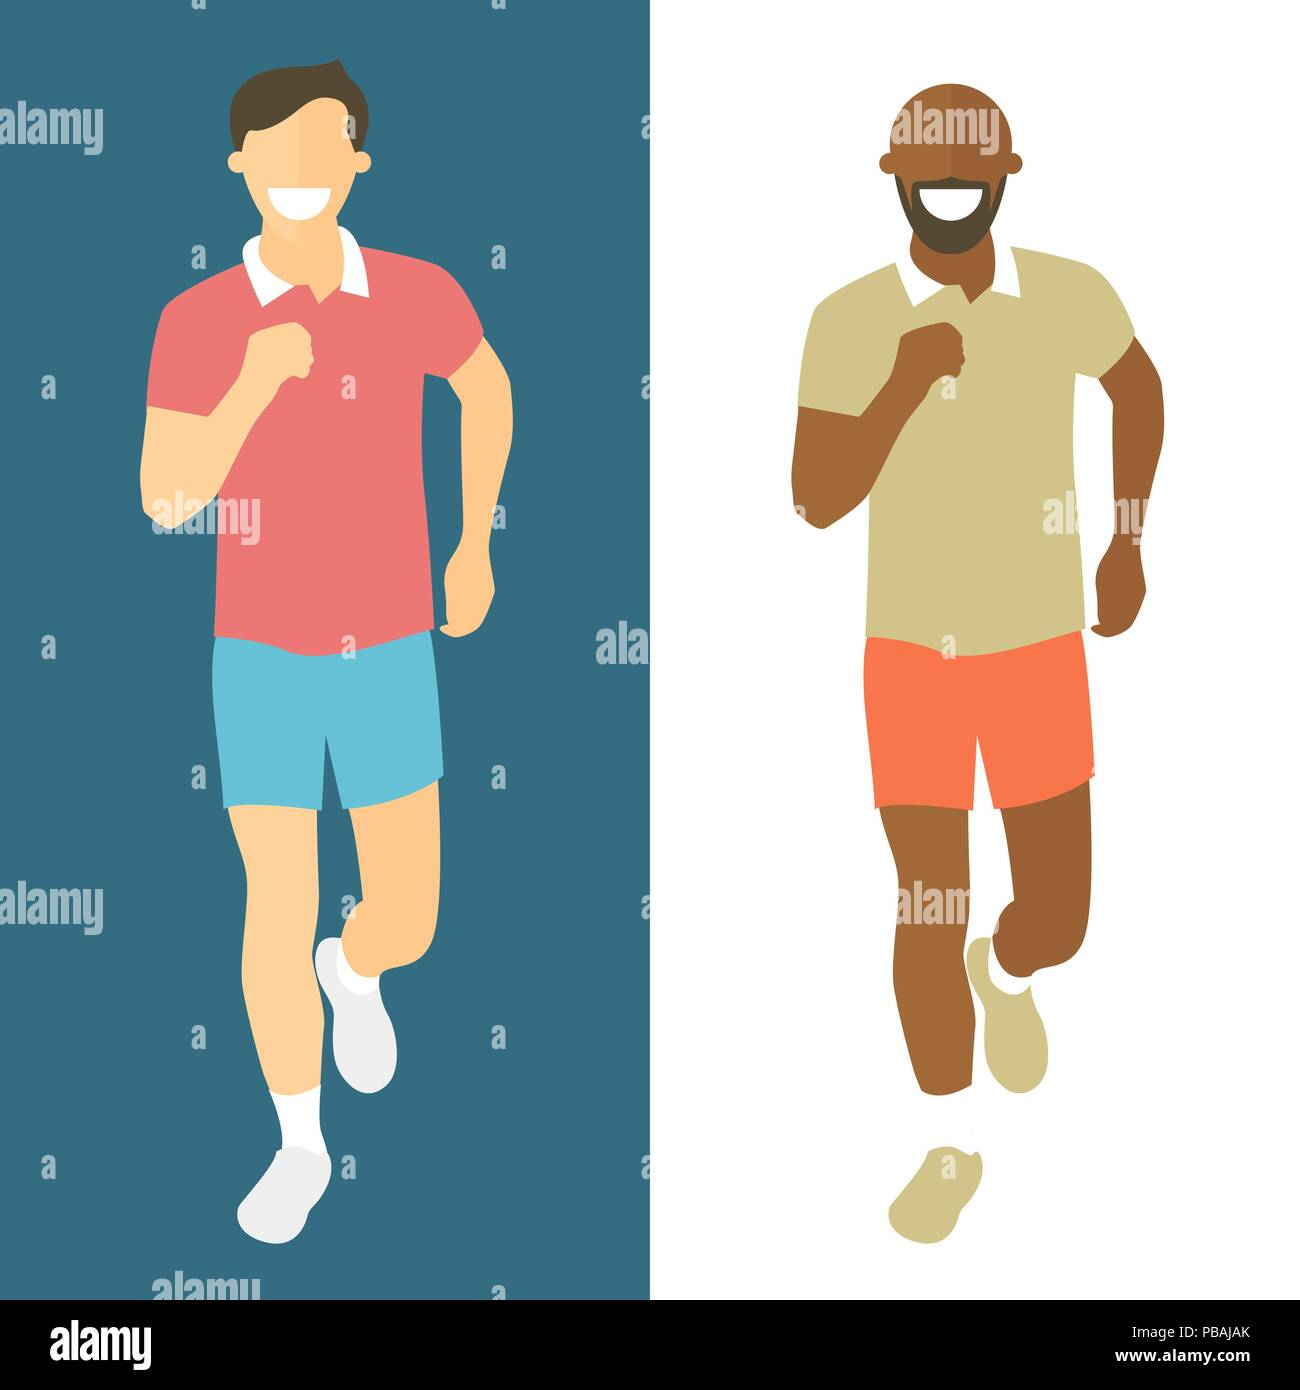 Flat Design Running Men Men Run Front View Vector Illustrations For Healthy Lifestyle Weight